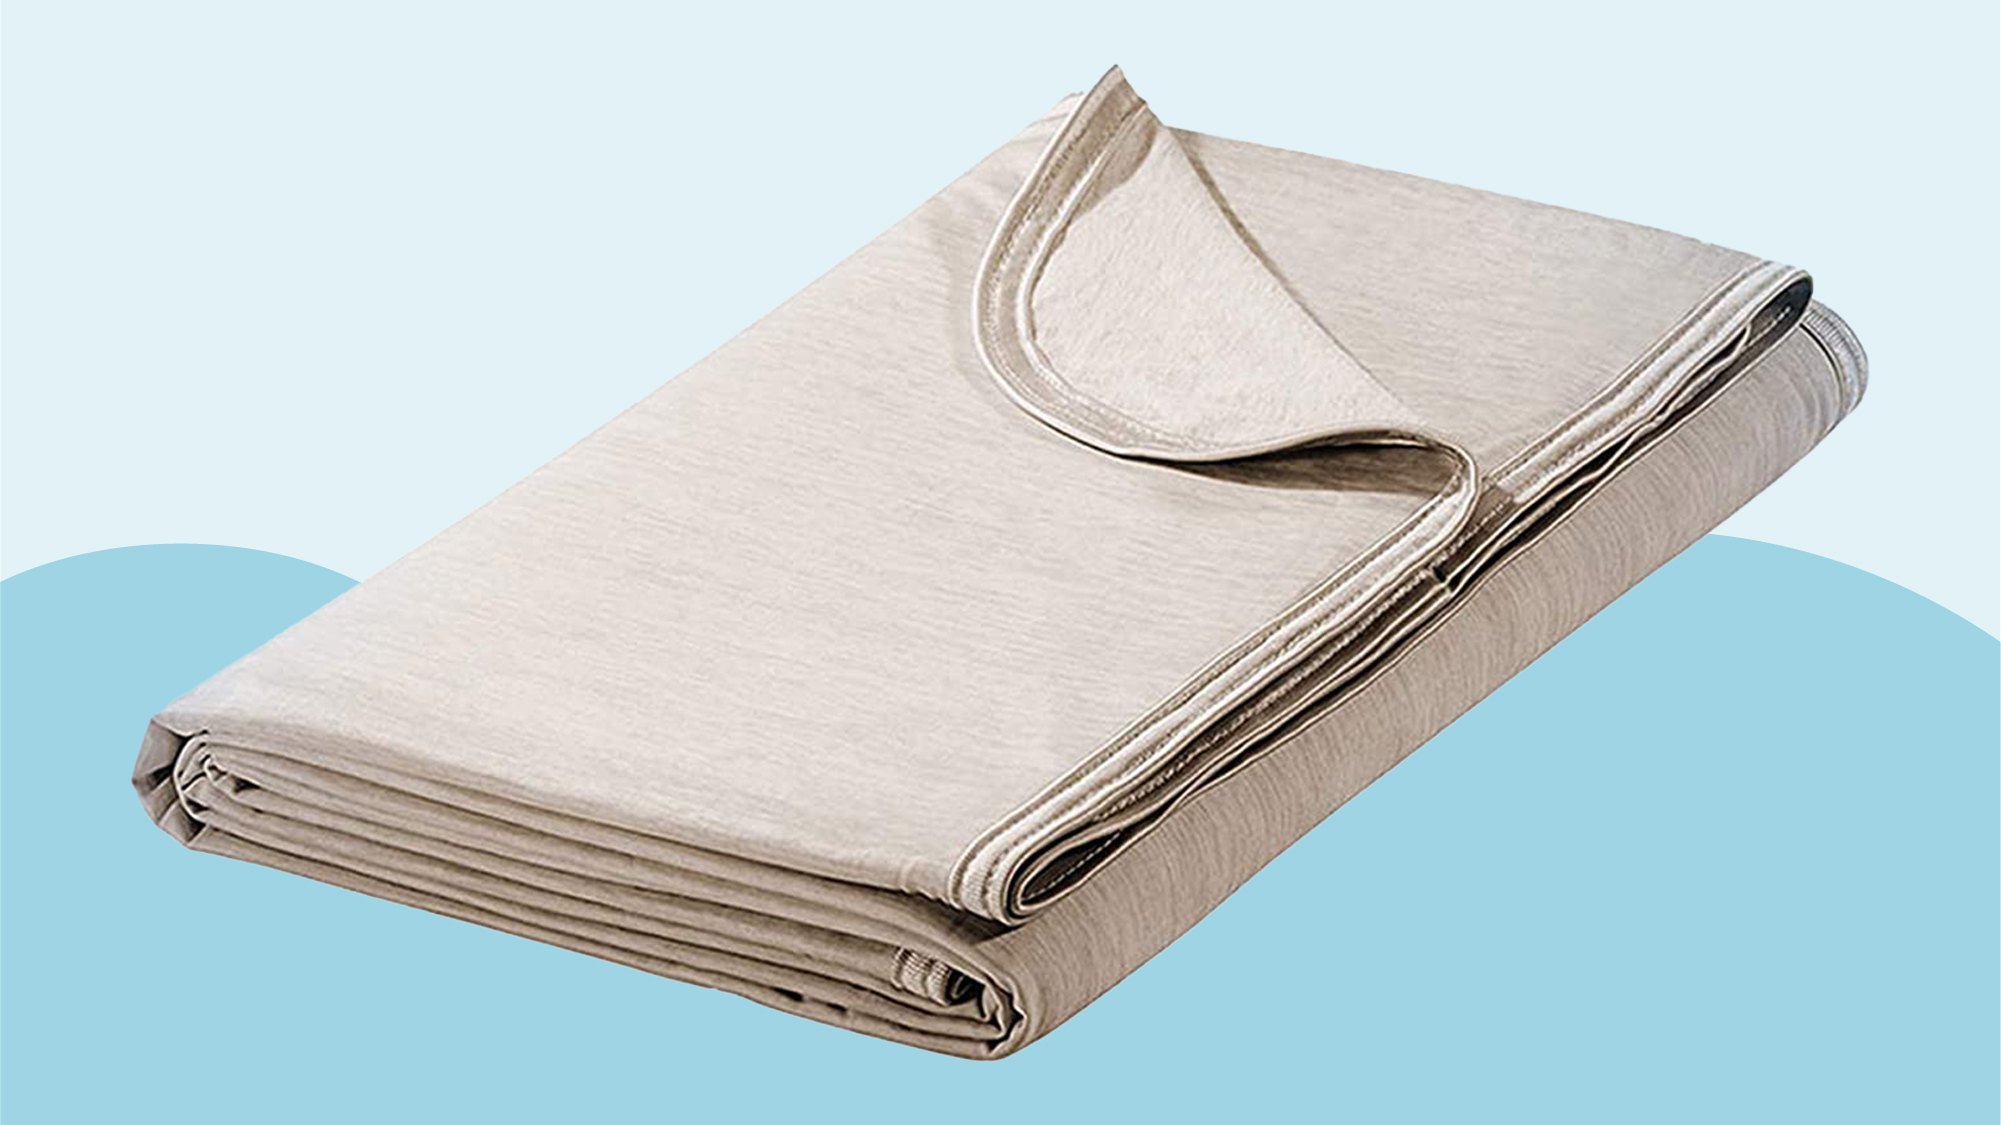 Elegear Revolutionary Cooling Blanket Absorbs Heat